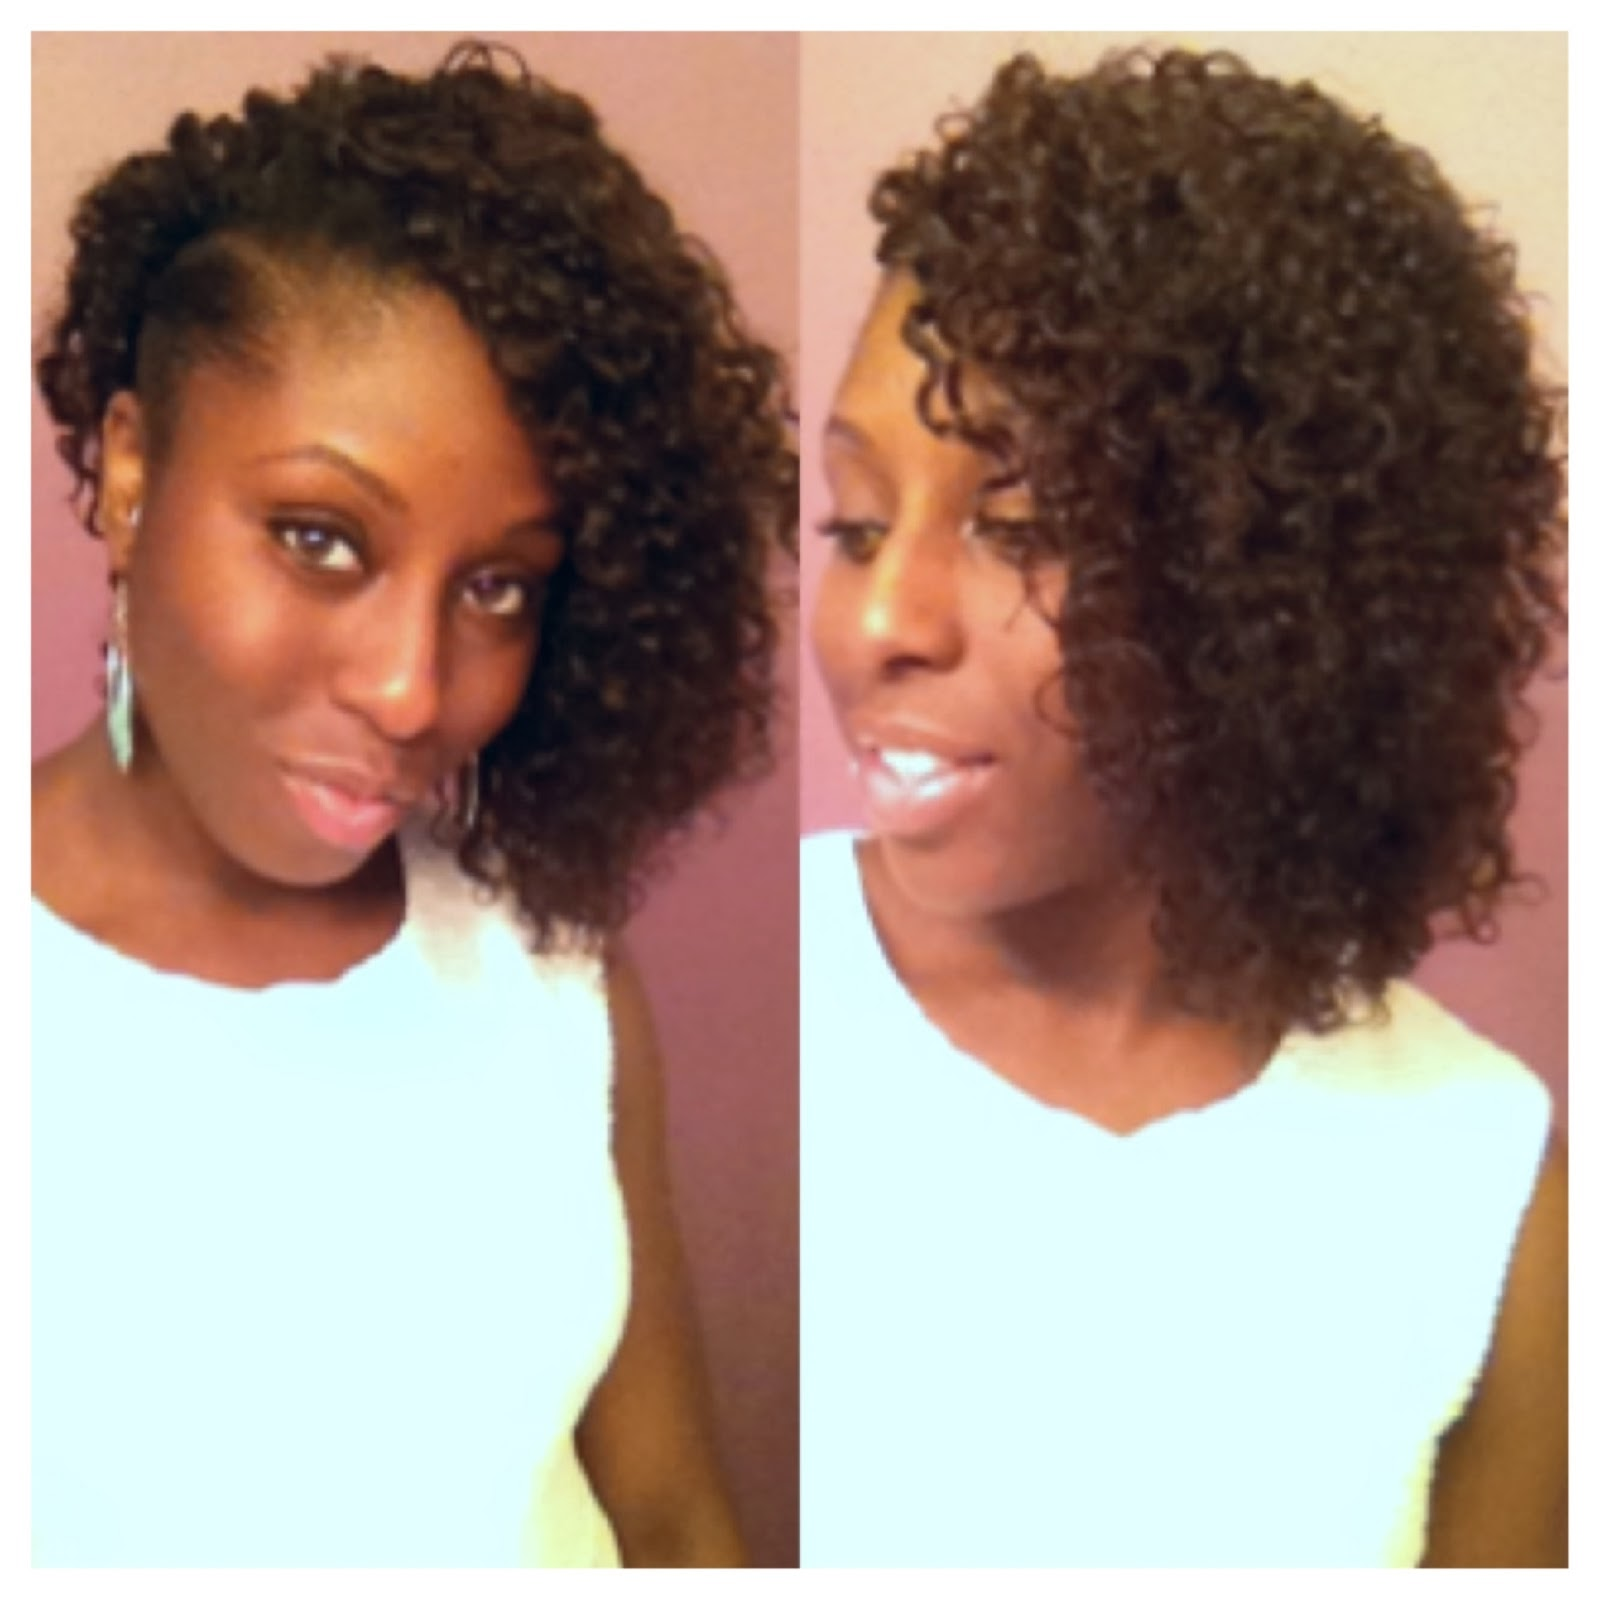 Hairstyles After Taking Out Braids Wallpaper Style